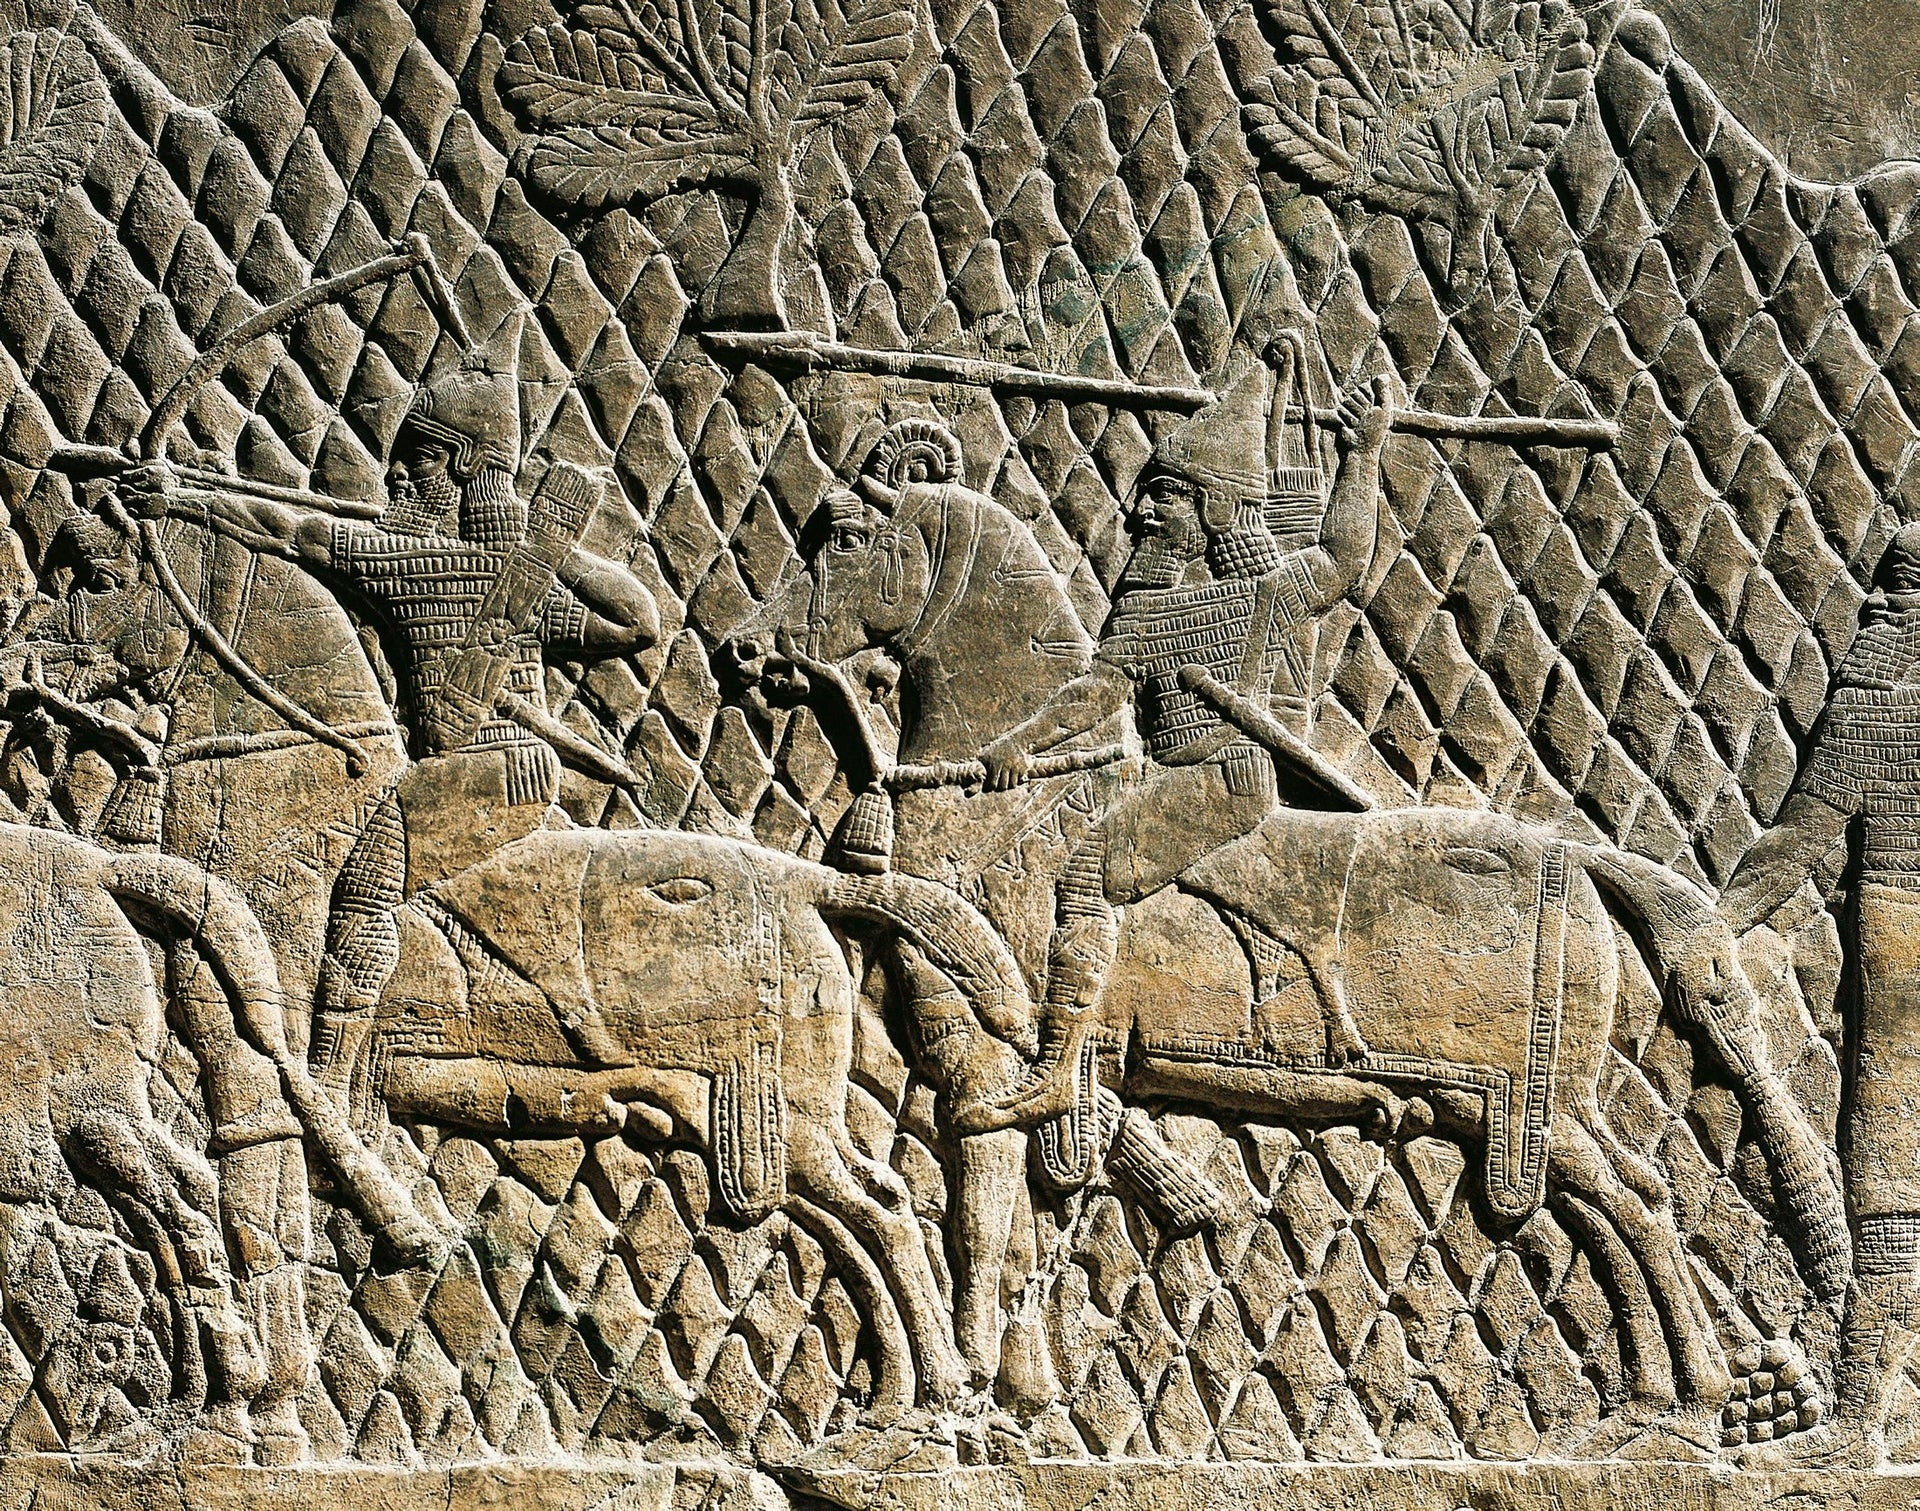 Assyrian relief depicting warriors on horses, 8th century B.C.E. From Ashurbanipal's palace at Nineveh